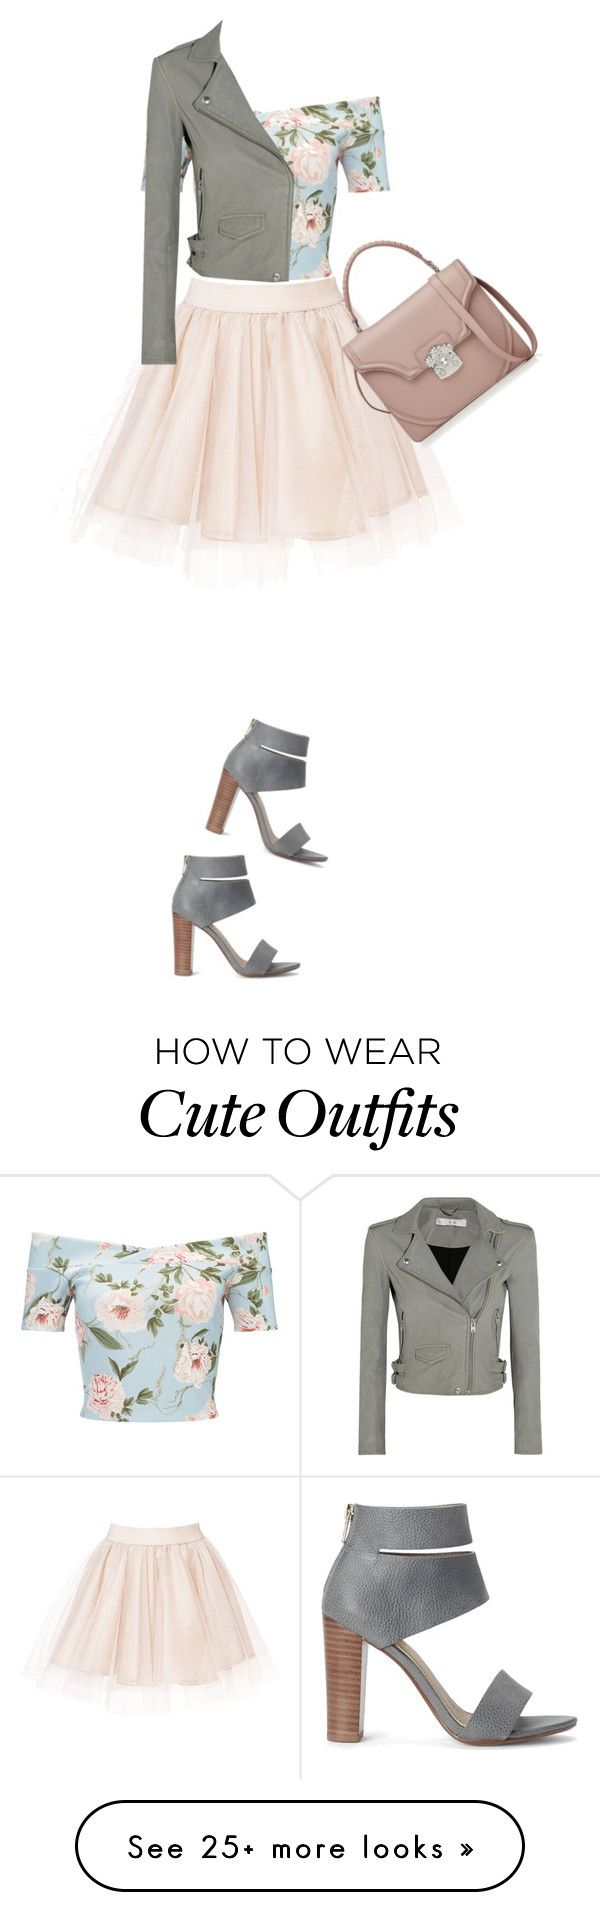 """Outfit"" by cachomy on Polyvore featuring Miss Selfridge, Splendid, IRO and Alexander McQueen"